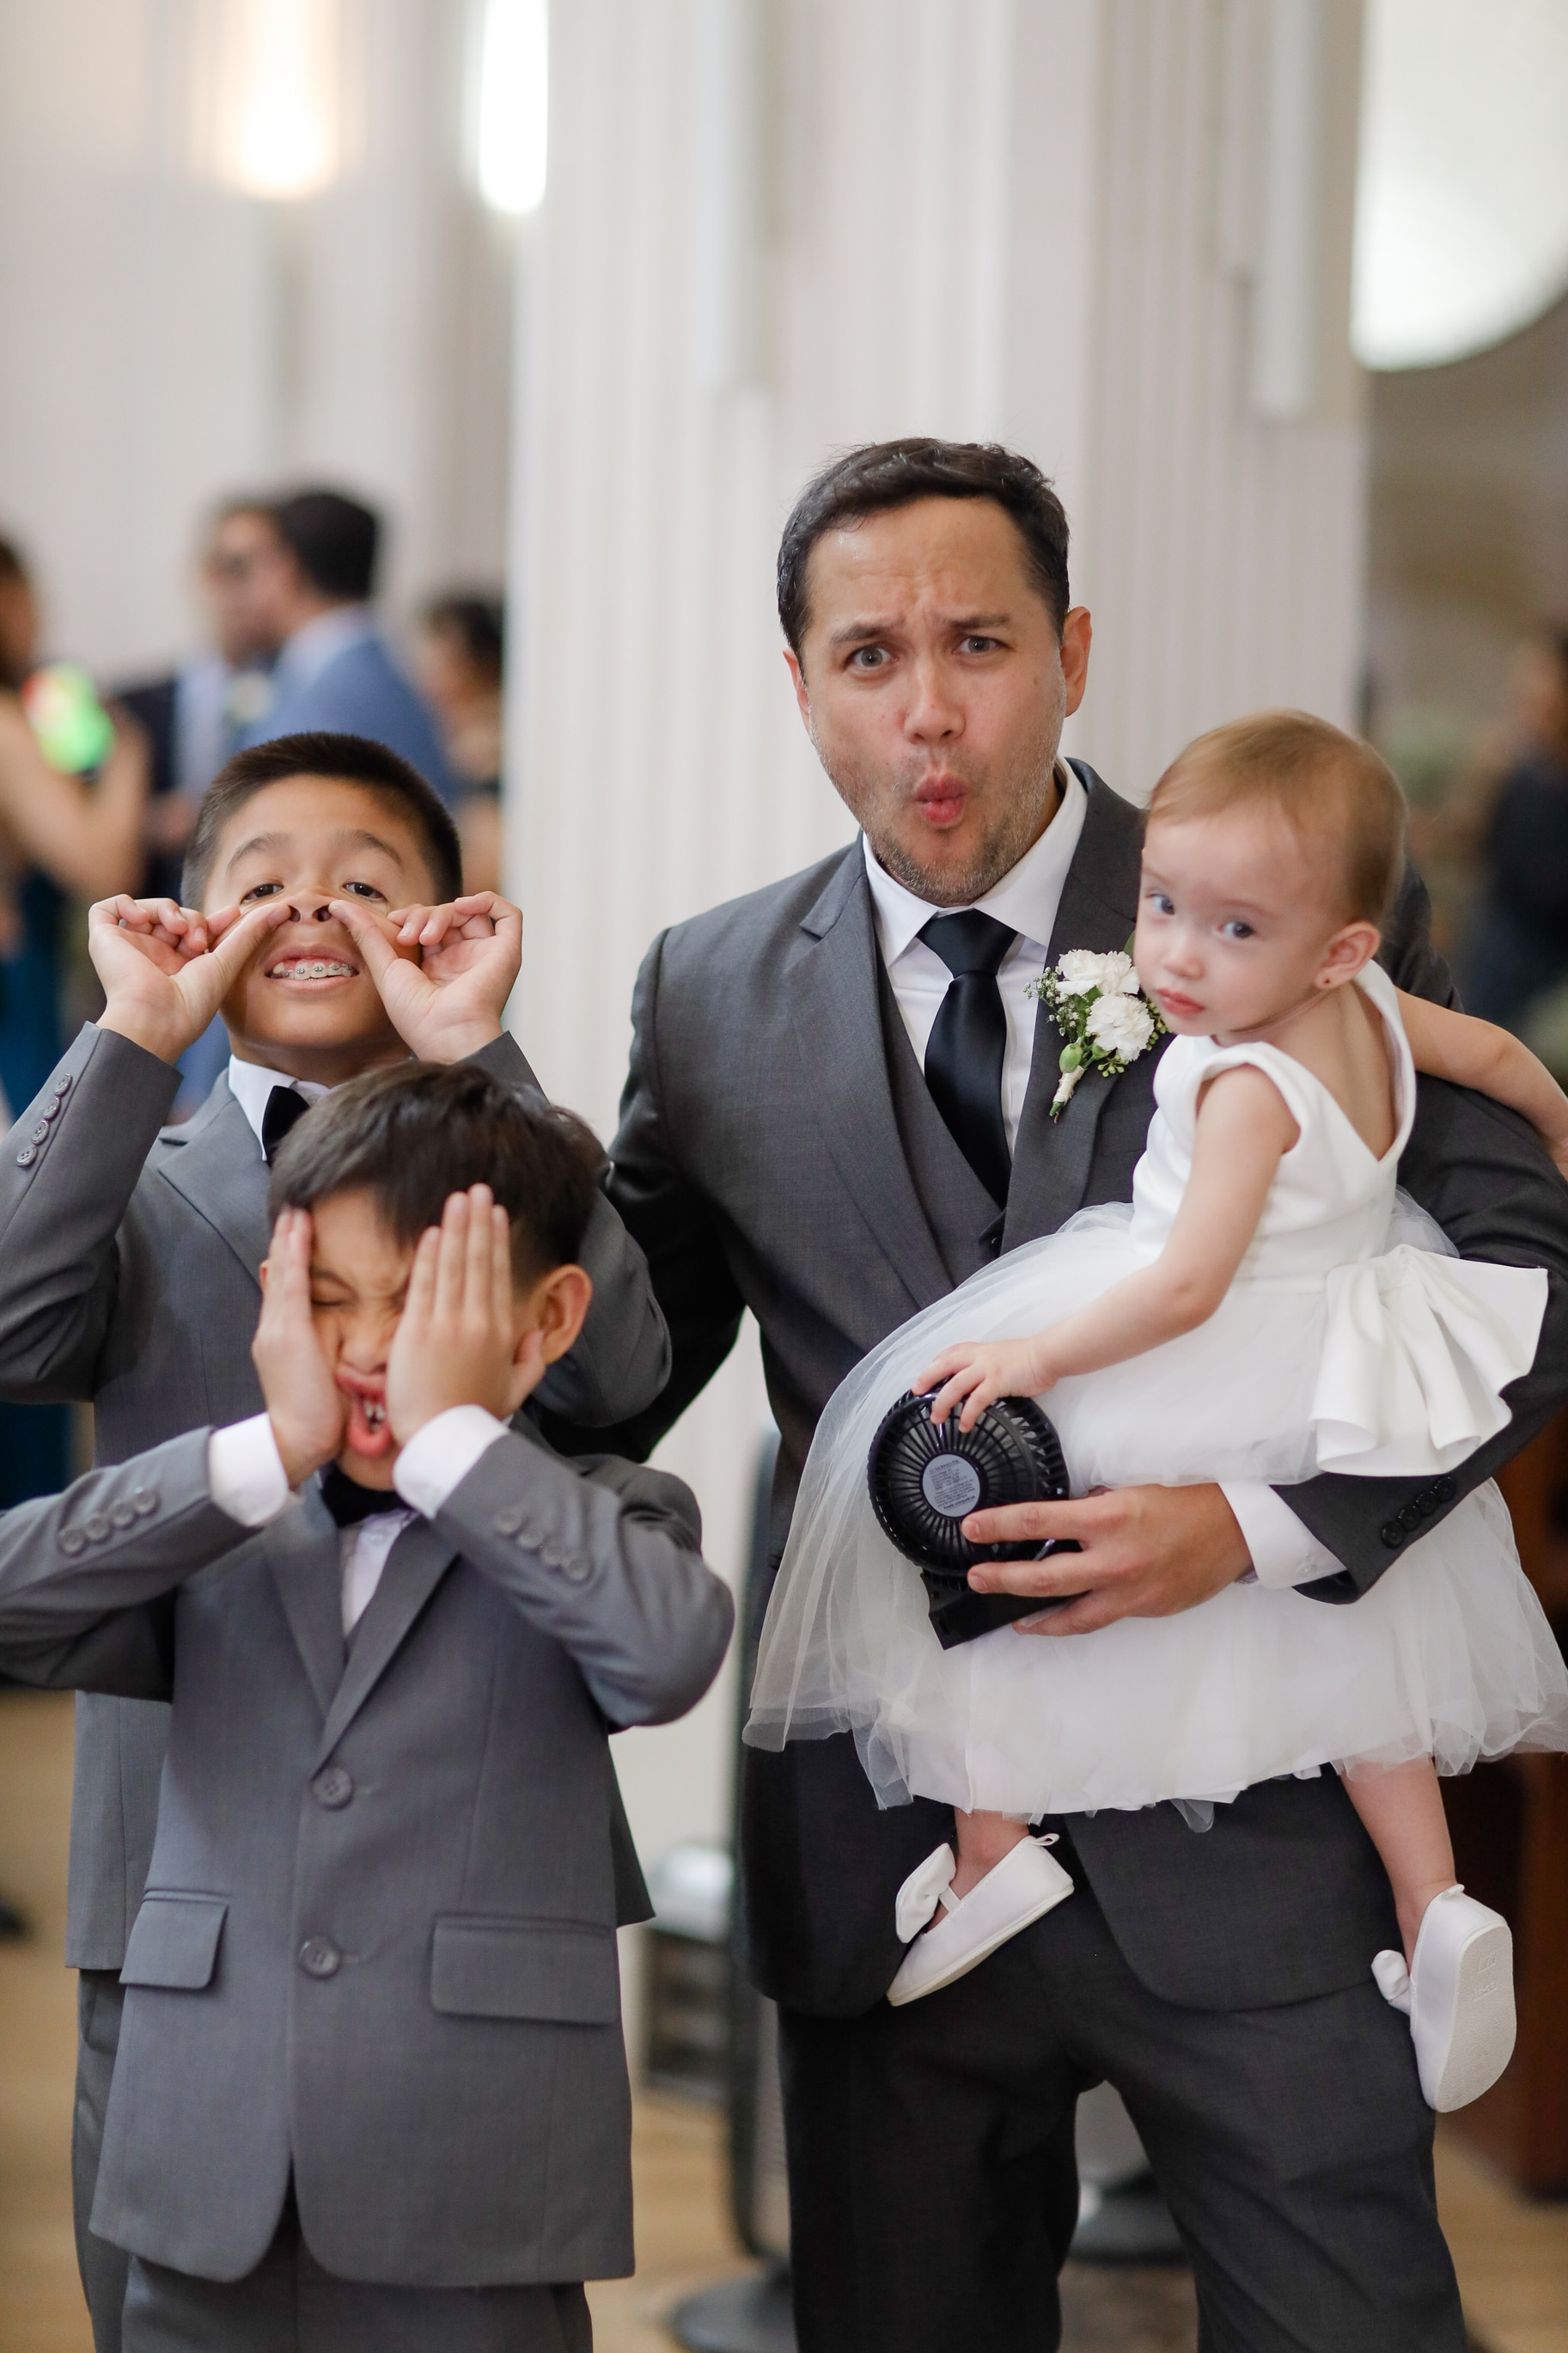 Michelle & Manolo's Neutral-Themed Wedding